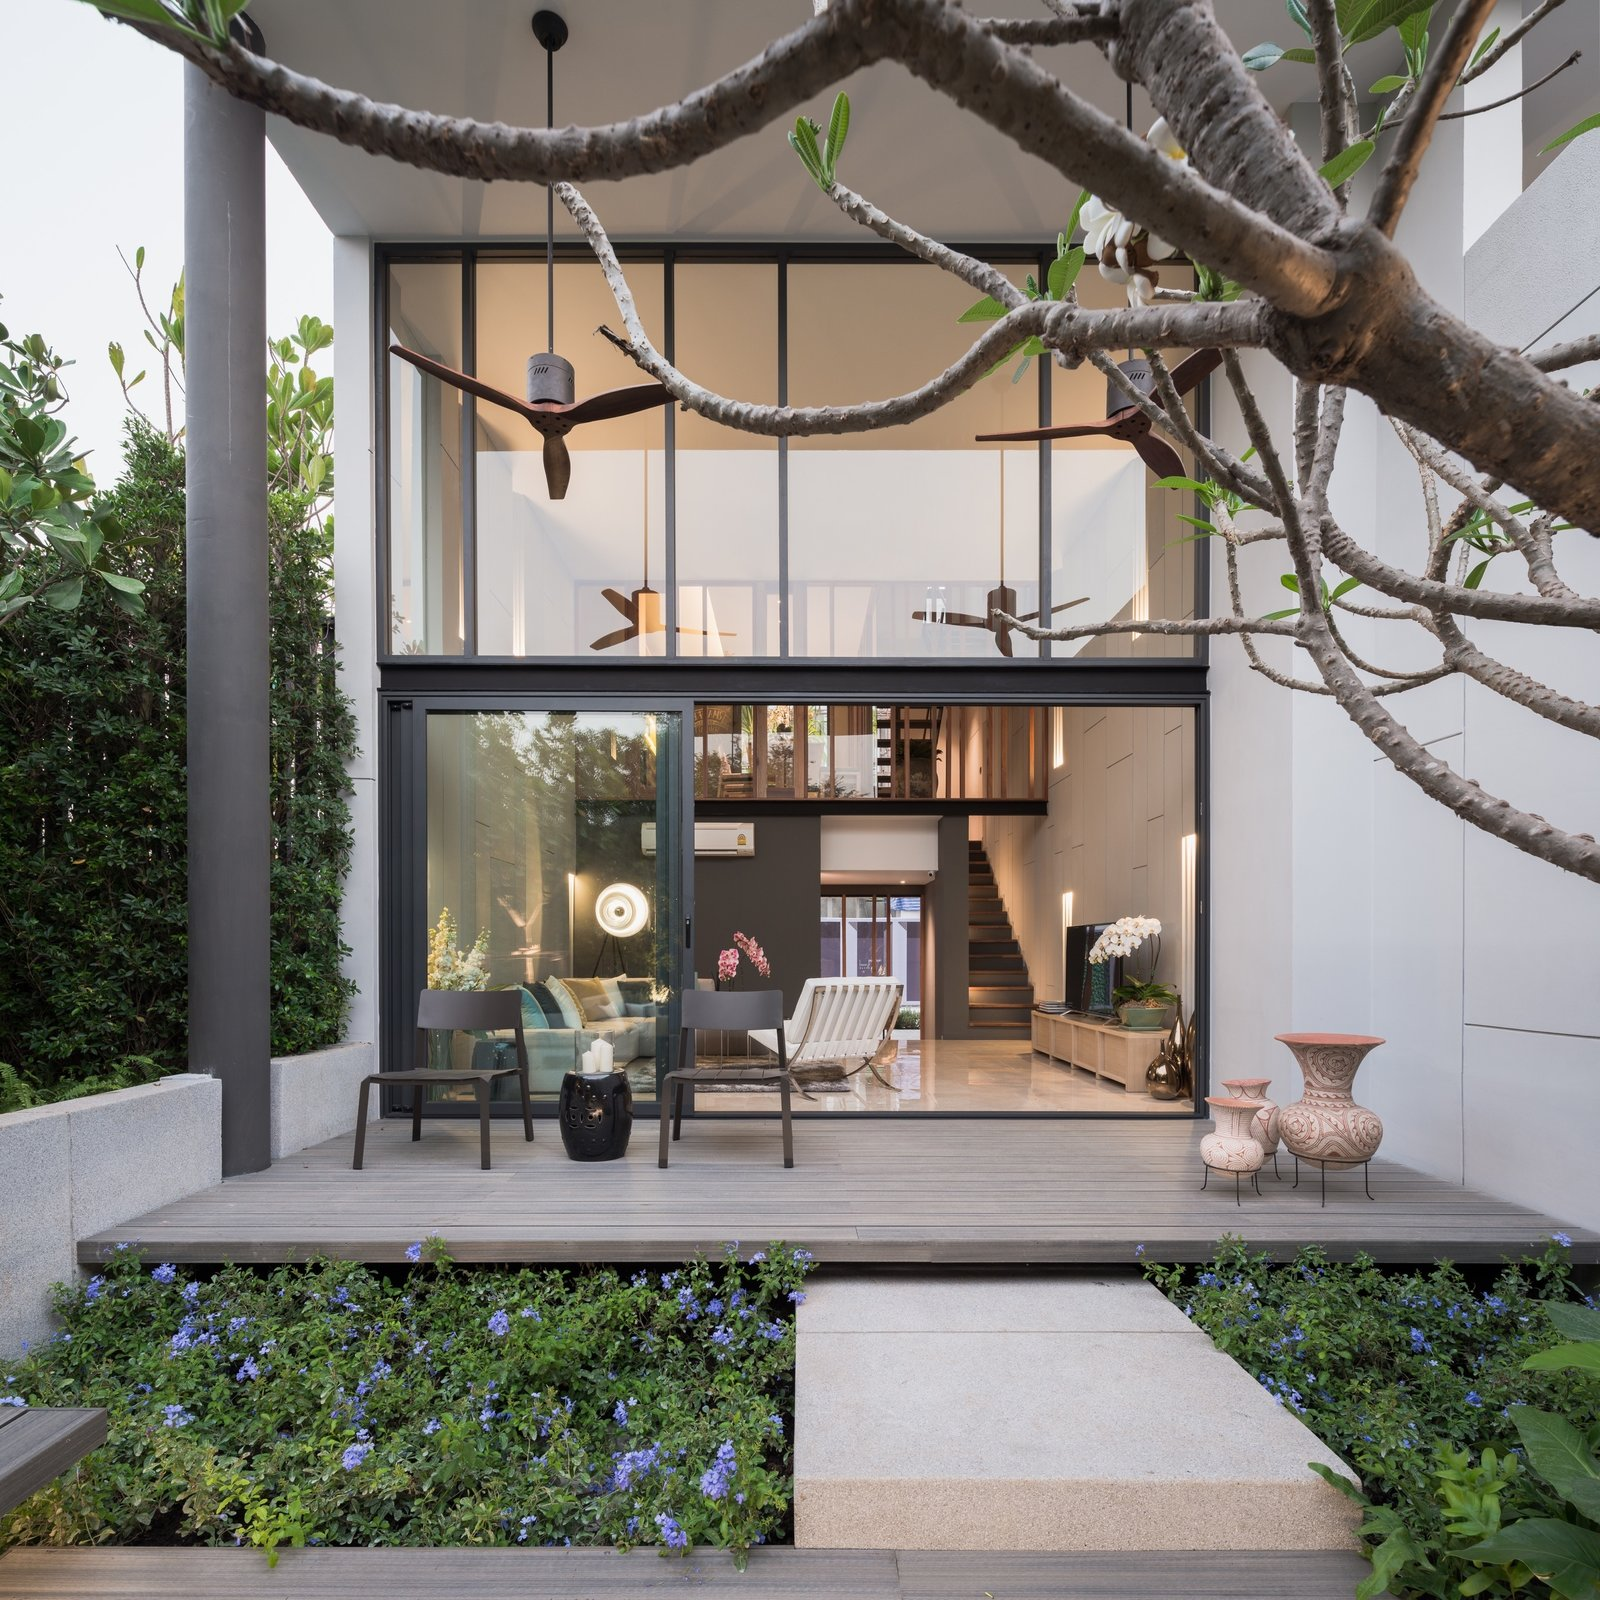 Townhouse with Private Garden by Khajorn Jaroonwanit